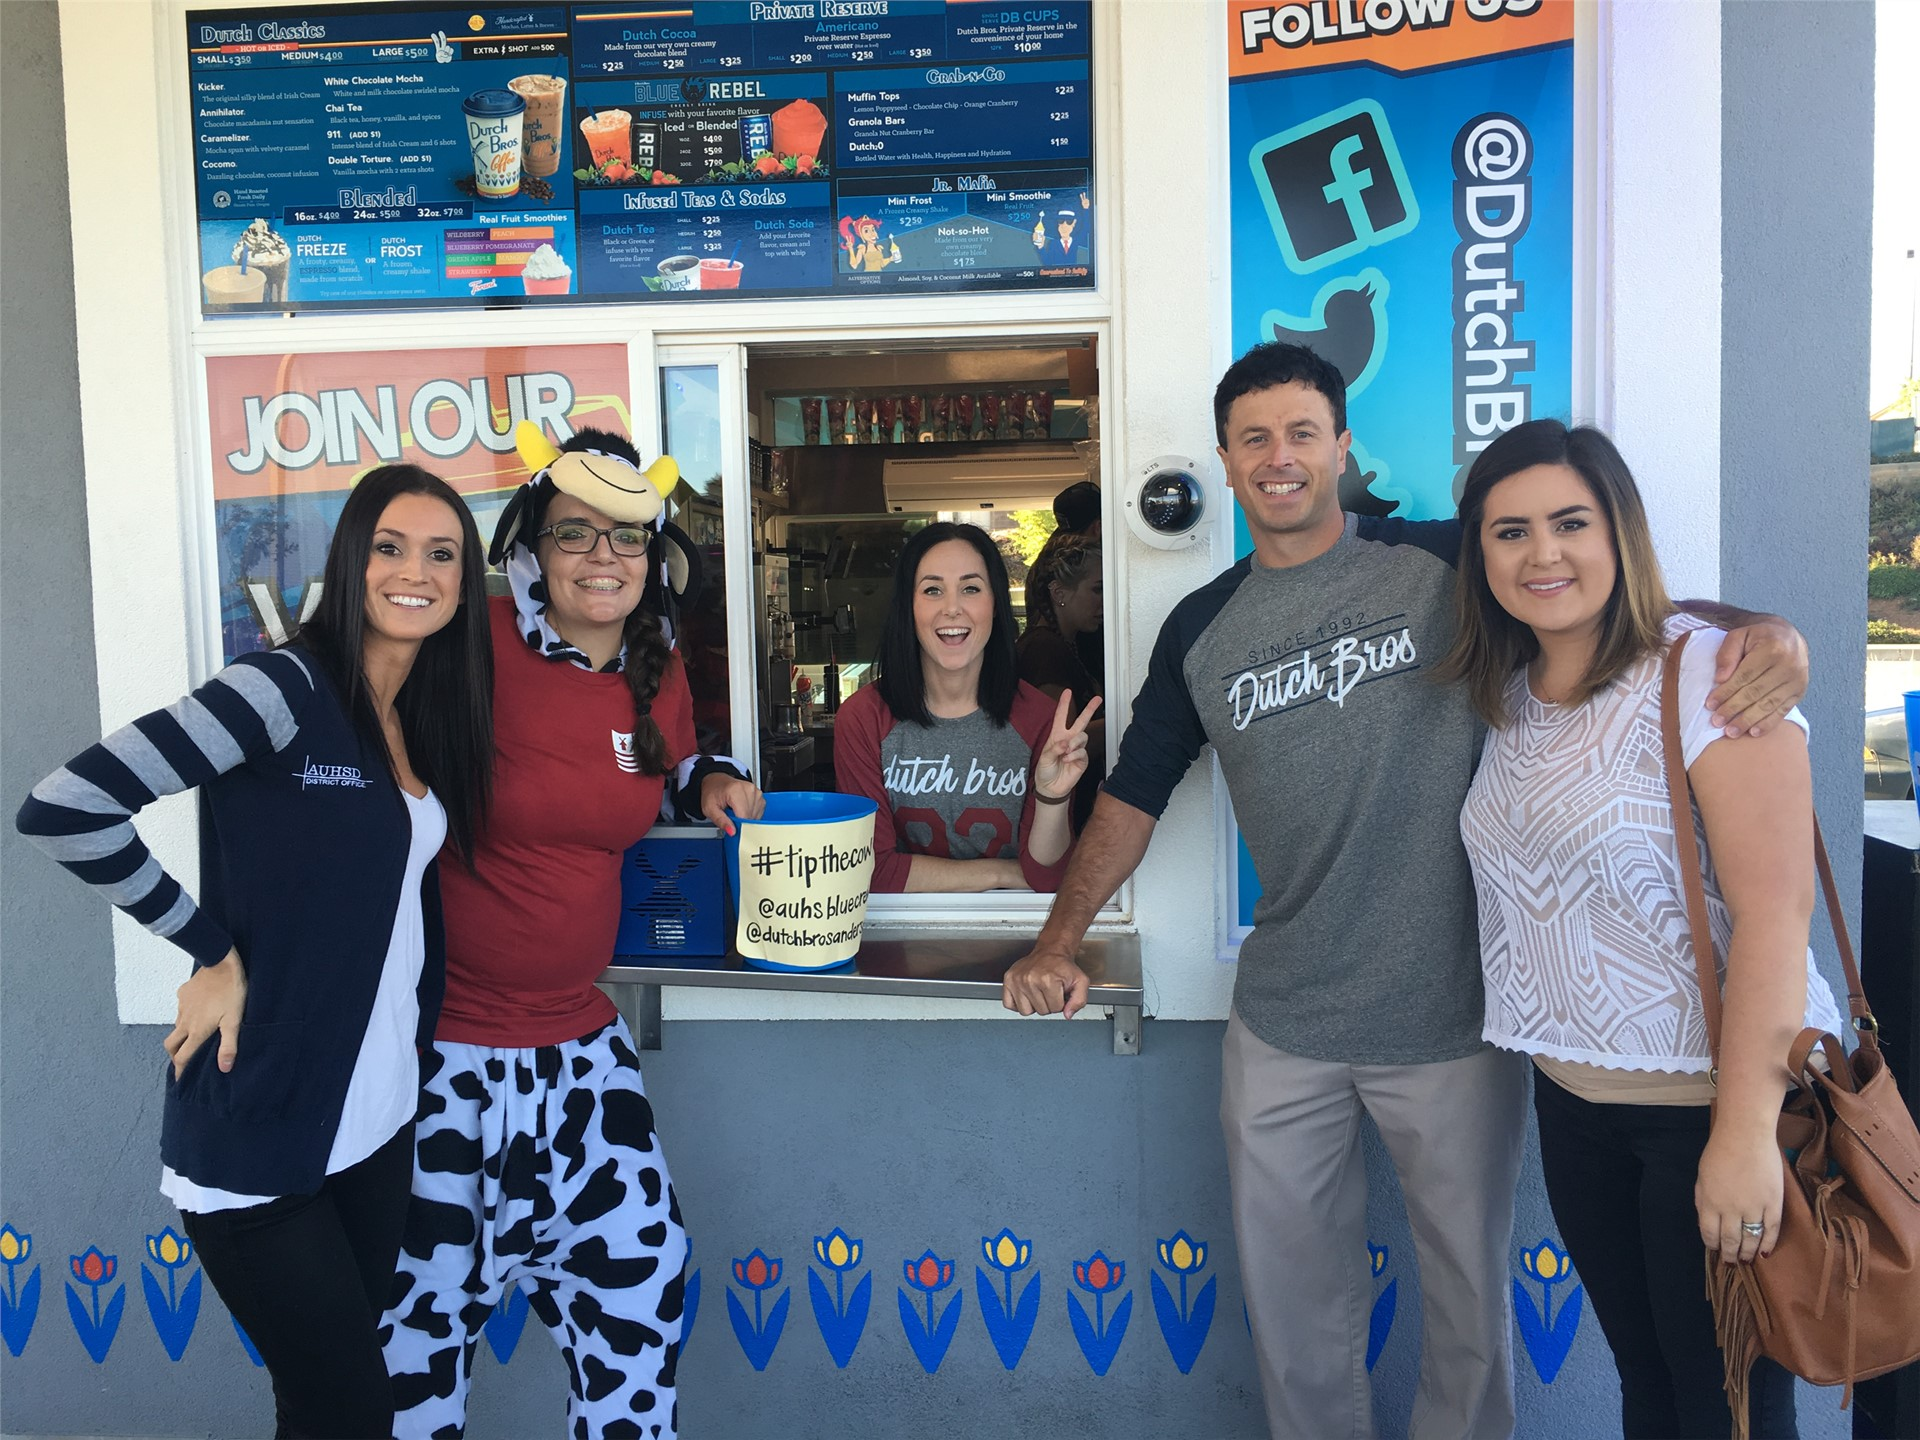 Lisa, Katy, Josh, and Jenna at Dutch Bros.